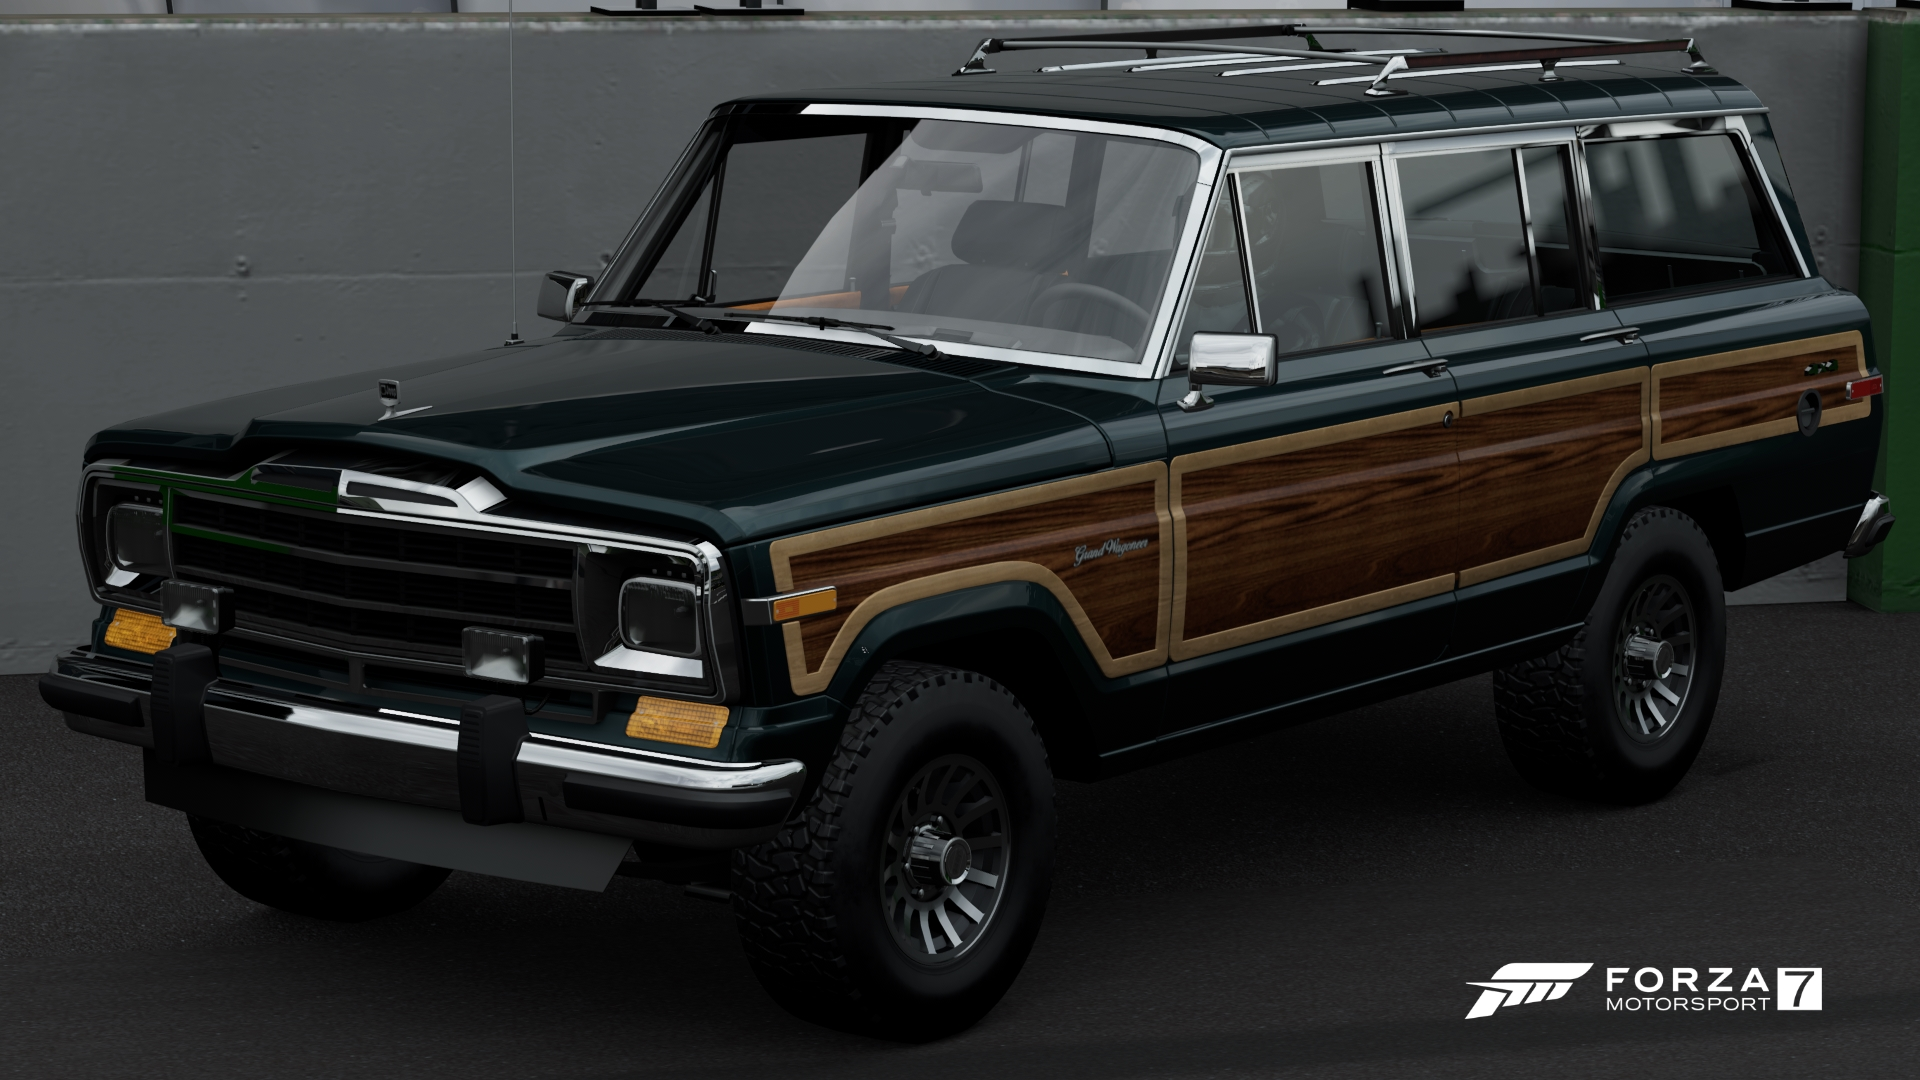 jeep grand wagoneer forza motorsport wiki fandom powered by wikia. Black Bedroom Furniture Sets. Home Design Ideas